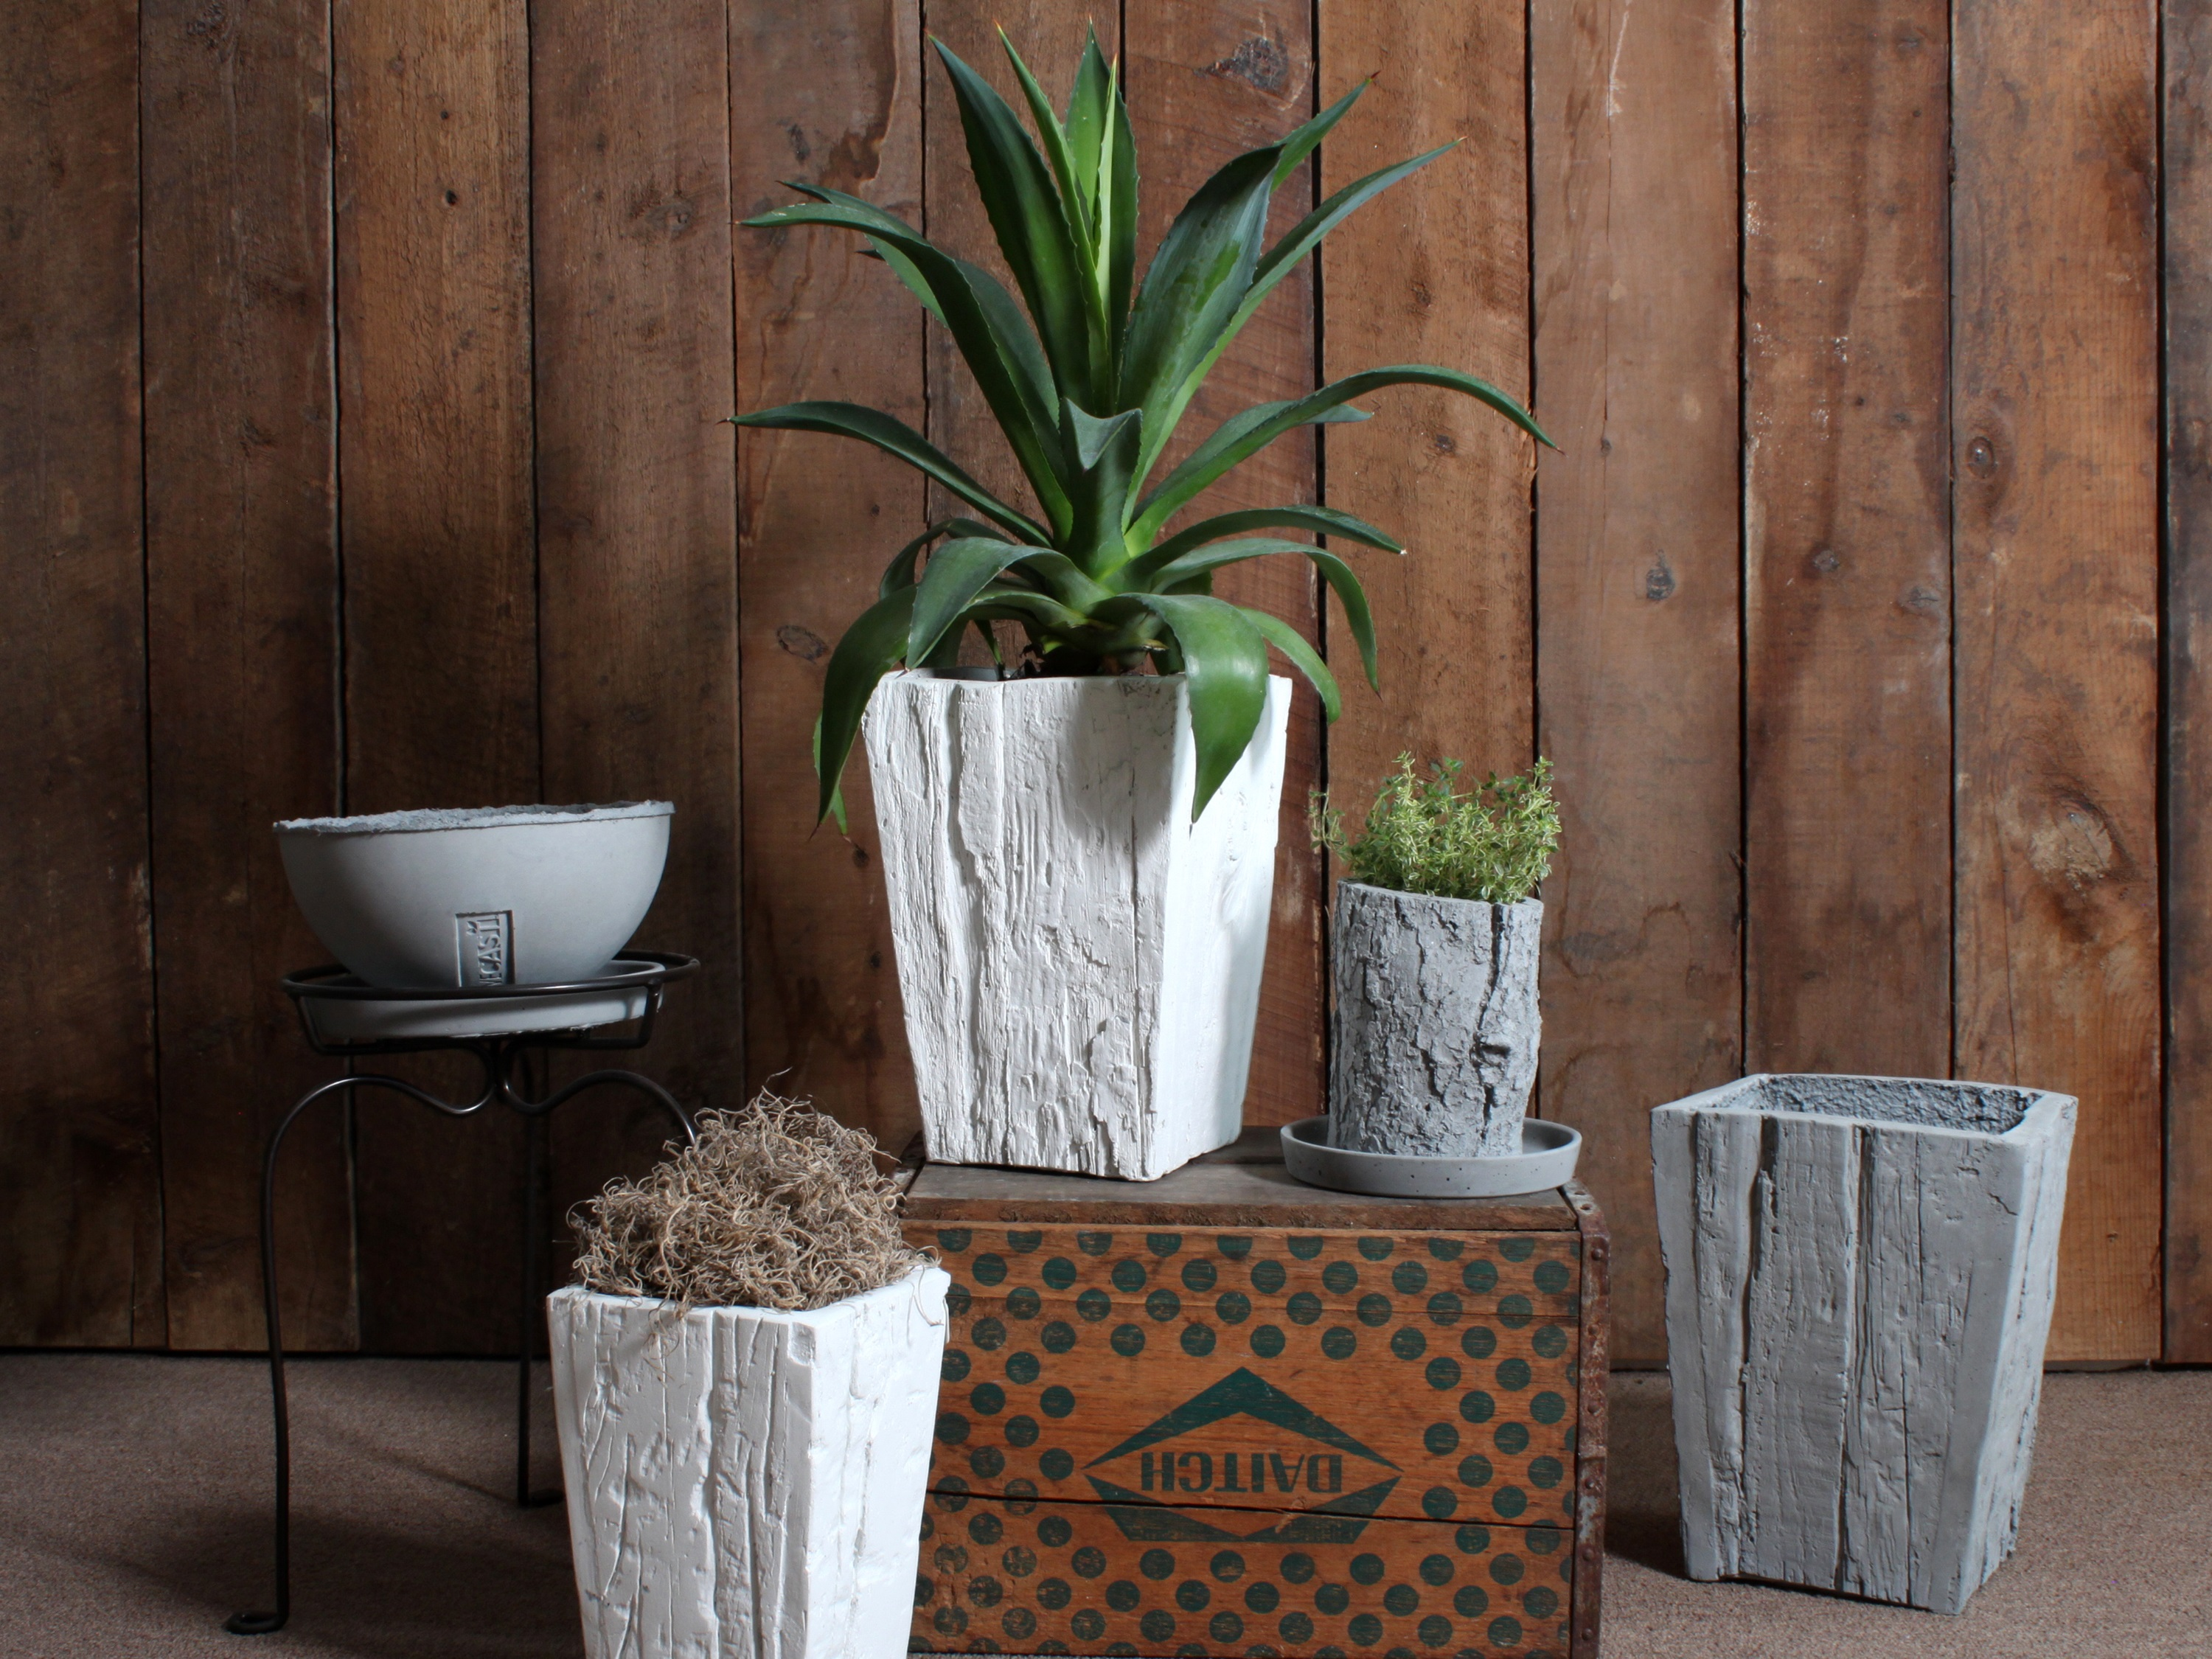 nativecasts planters are portable and rustic looking on trend for 20152015 garden trends - Rustic Garden 2015